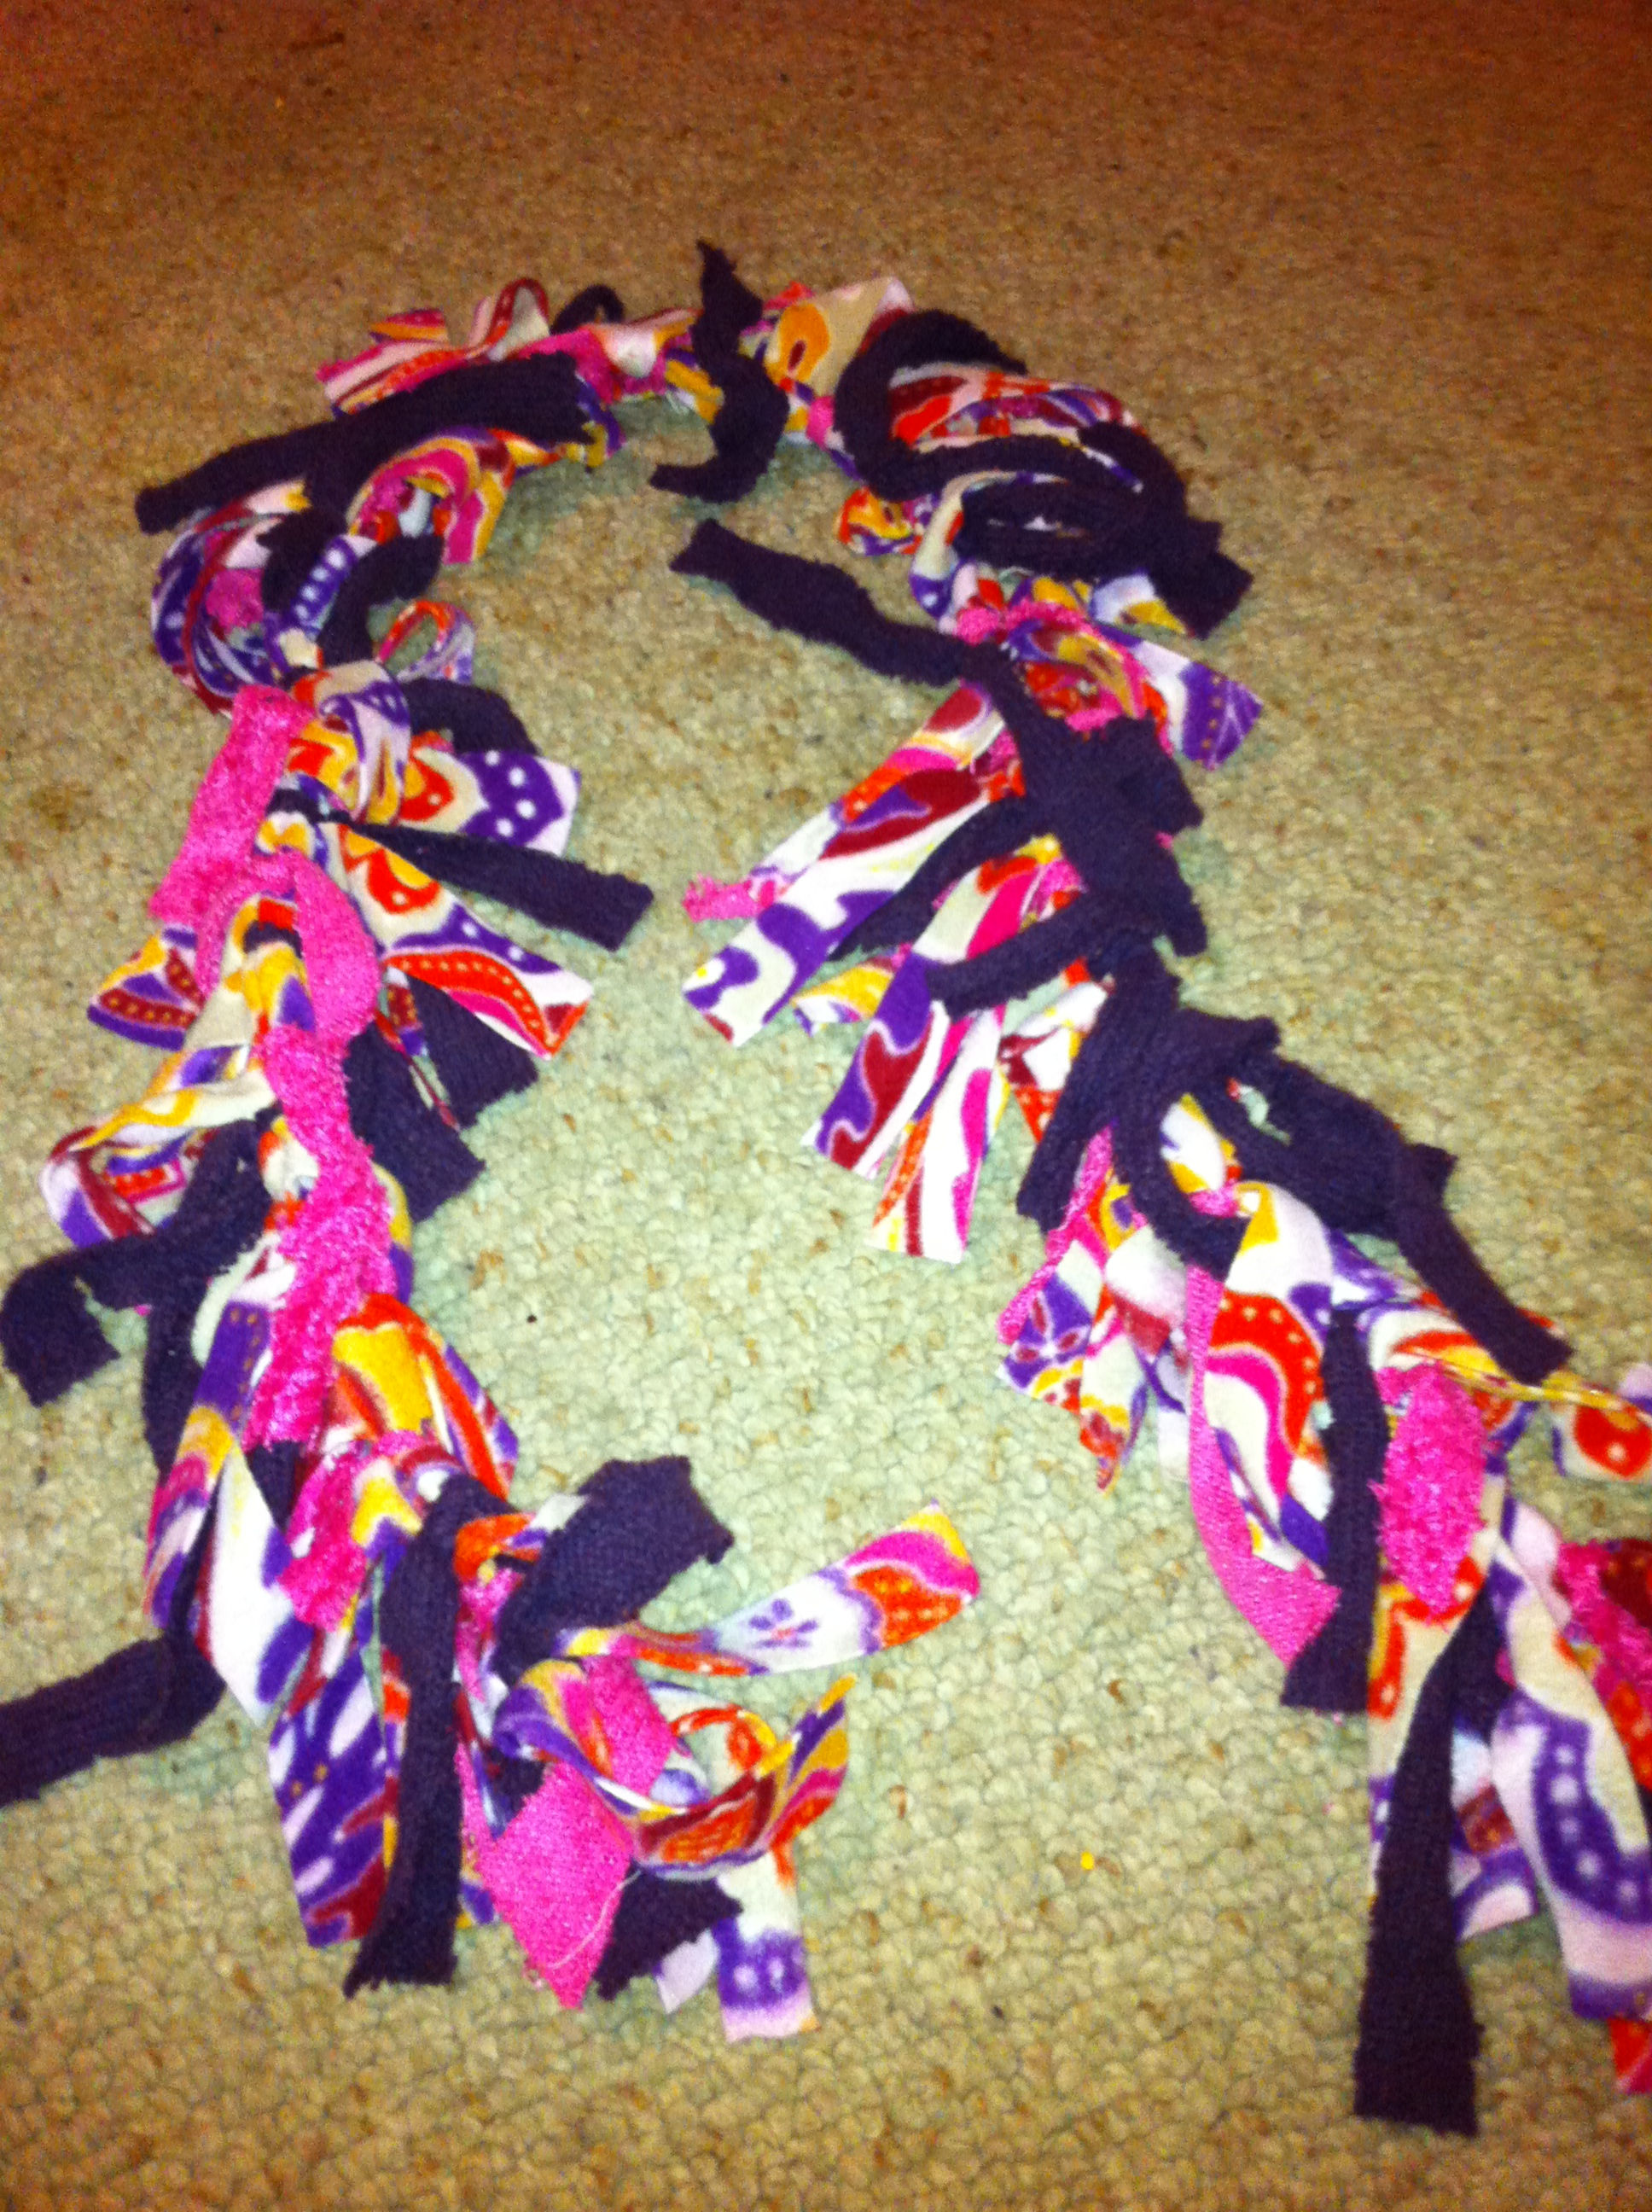 This is a great DIY and perfect for gift giving too! You can make a fleece scarf with your own clothing or with items that you pick up at yard sales or Goodwill. Perfect Christmas present that costs very little!